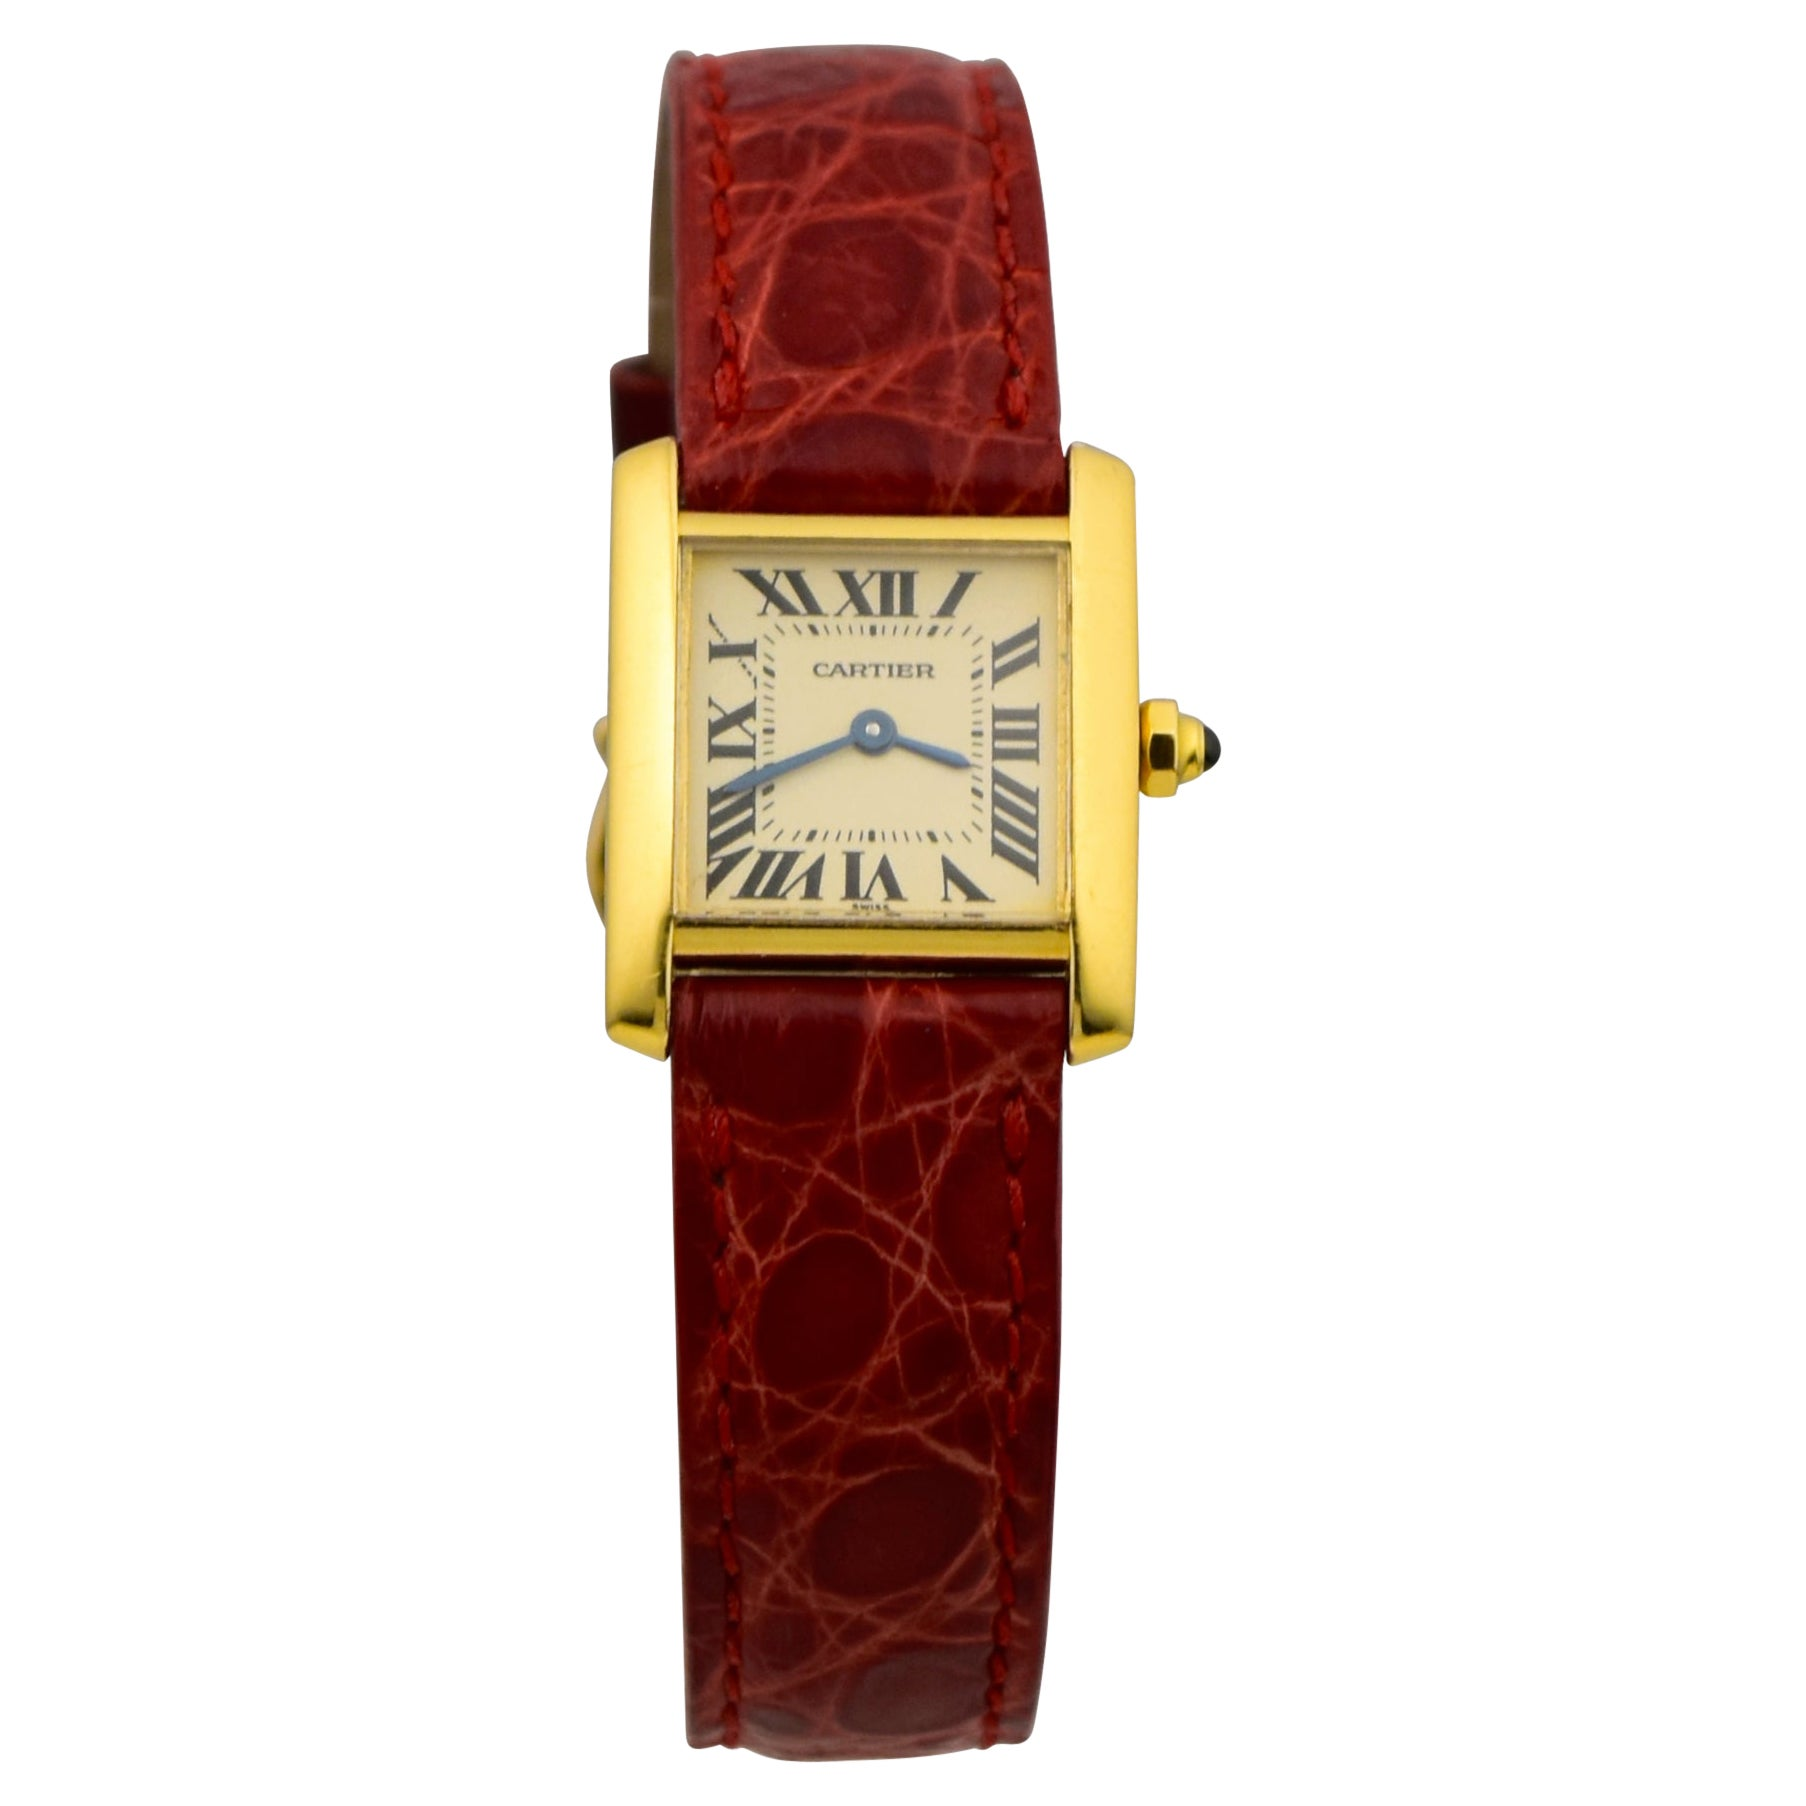 Cartier Tank Montres Francaise in 18k Yellow Gold Watch